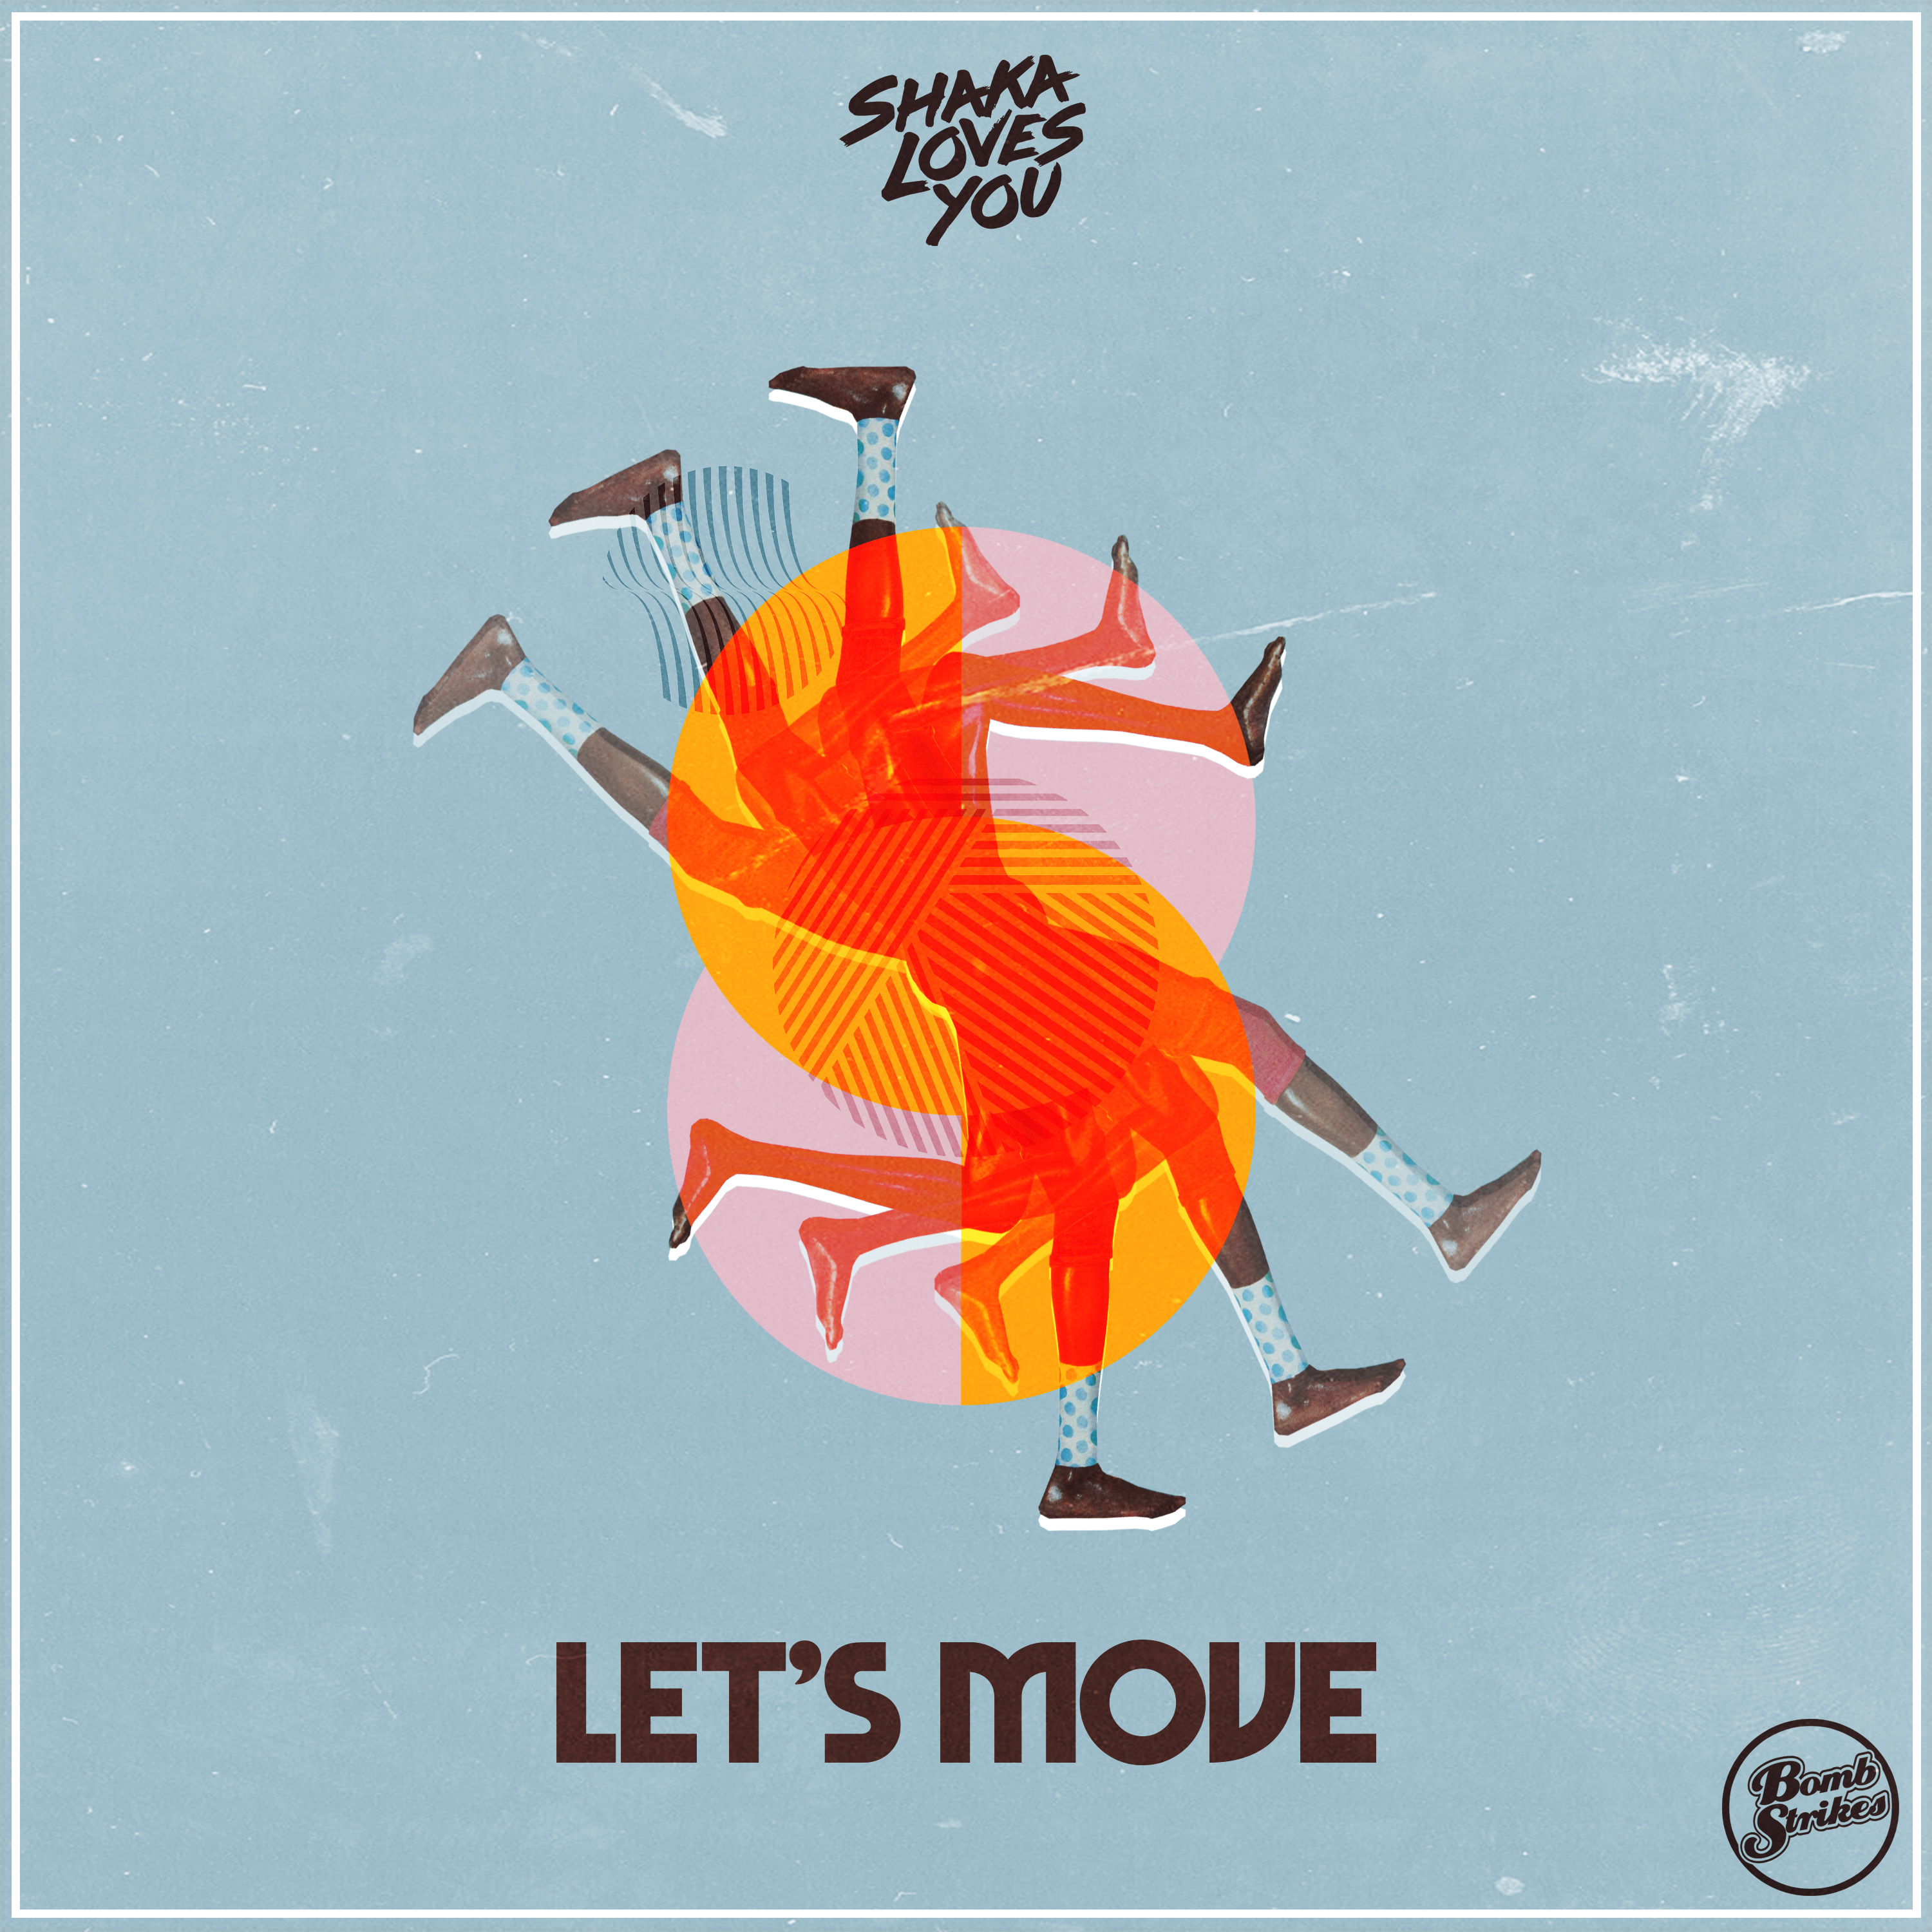 Shaka Loves You - Let's Move Image